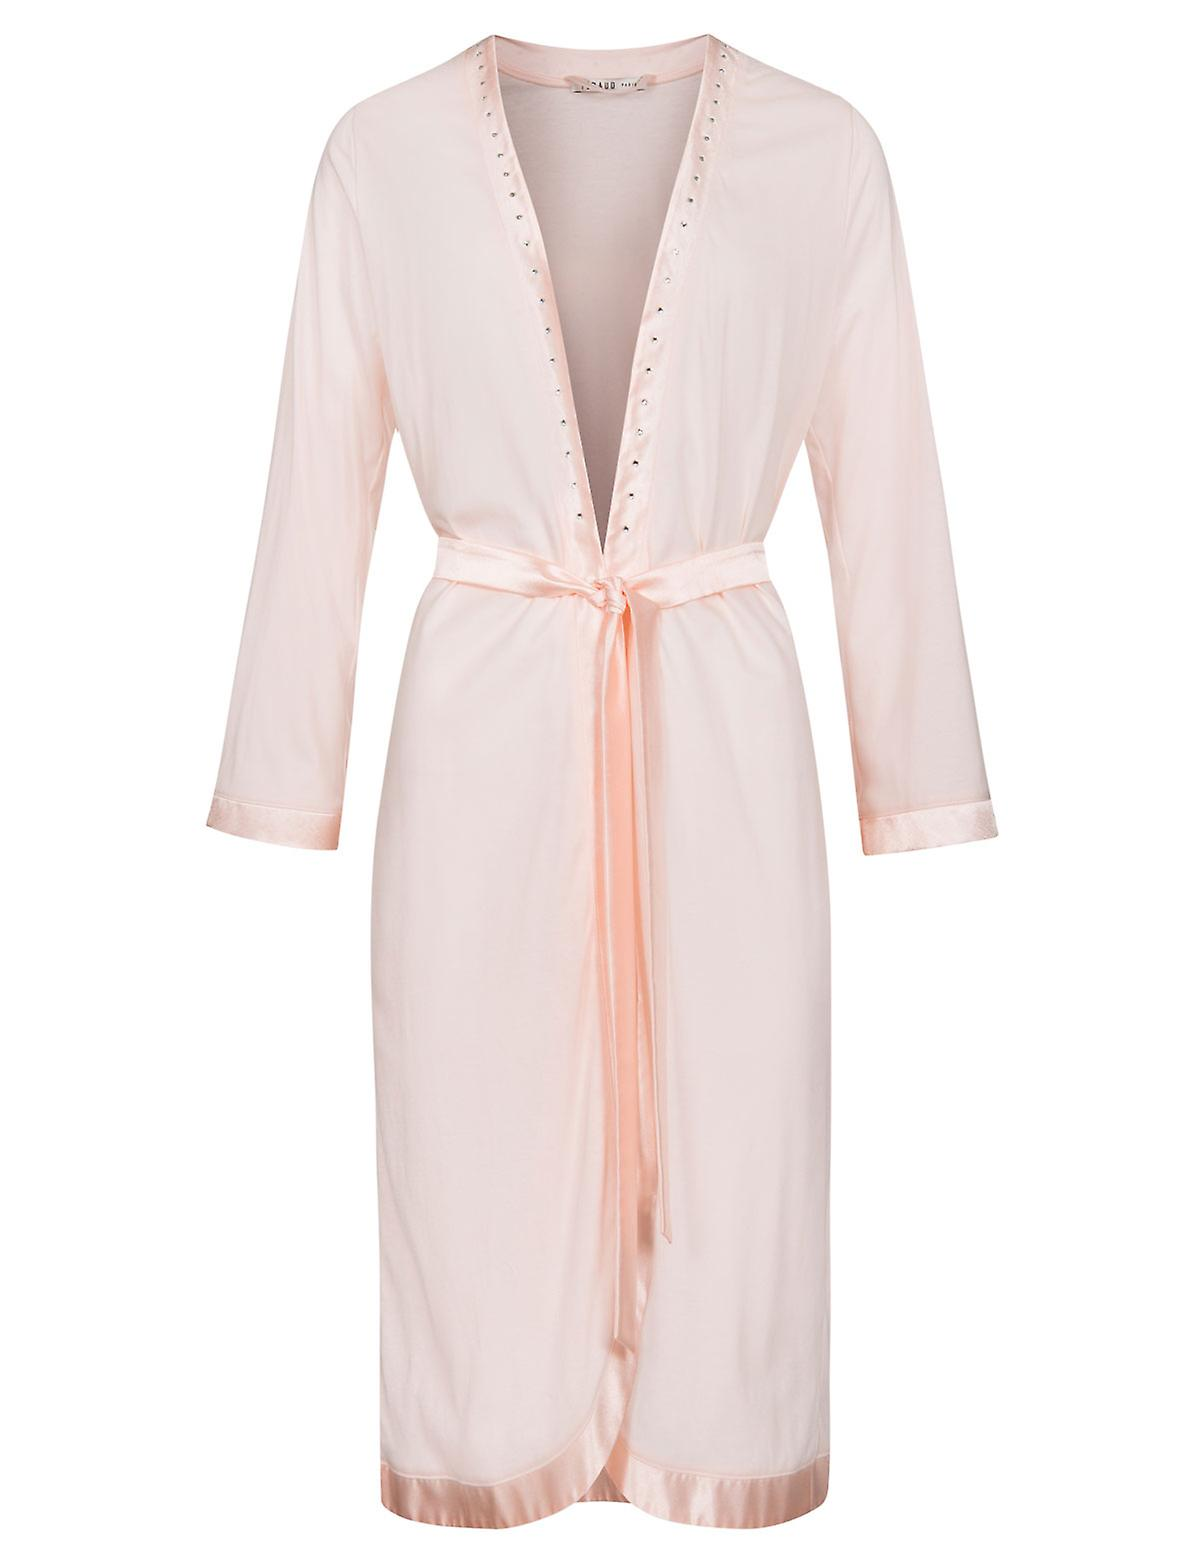 Feraud 3181315-11577 Women s Couture New Rose Pink Solid Colour Dressing  Gown Loungewear Bath Robe 8601e1c89